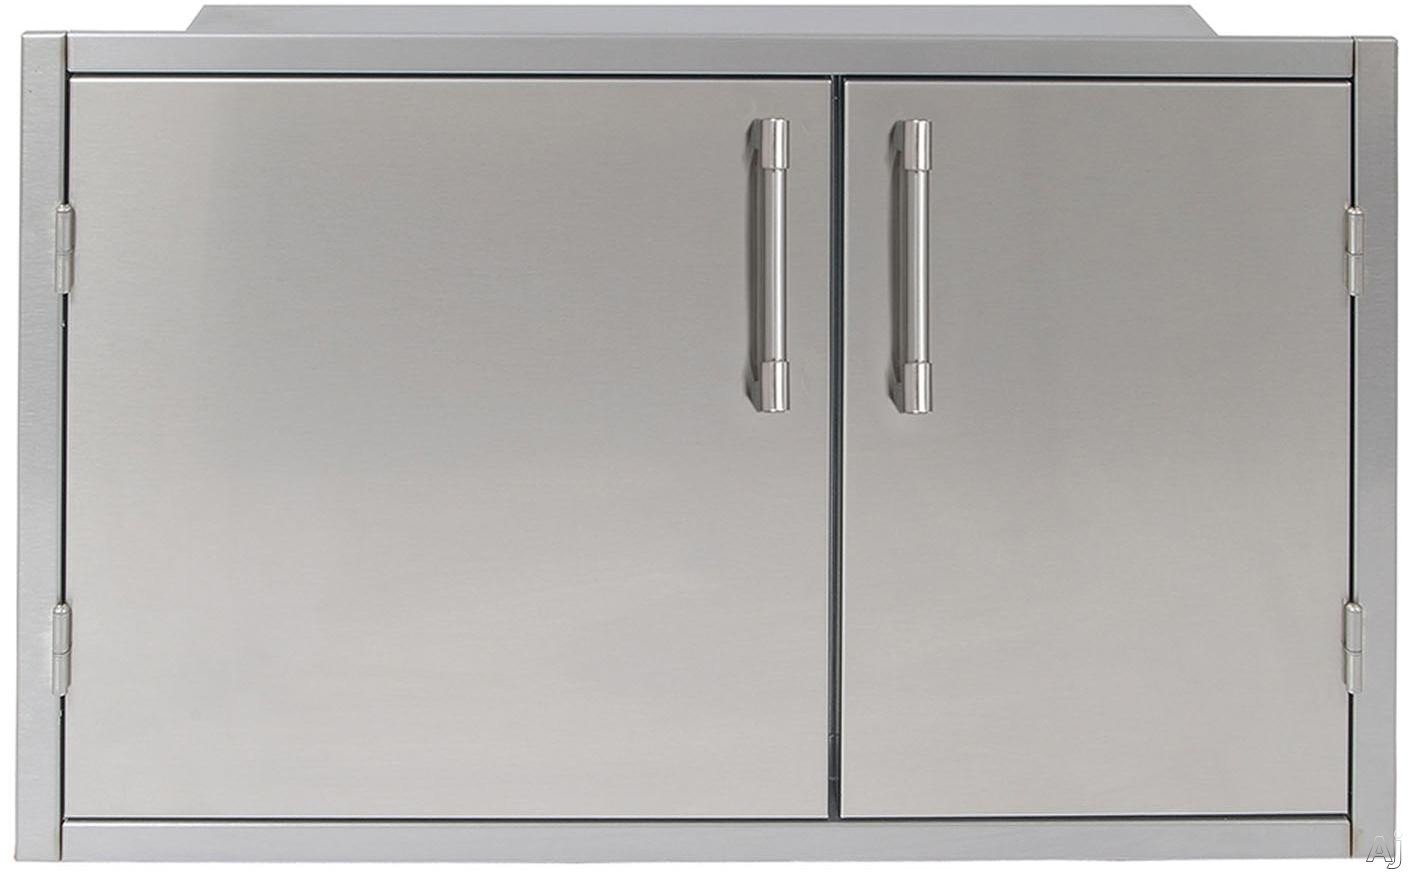 Alfresco Axedsp42h 42 Inch High-profile Built-in Dry Pantry